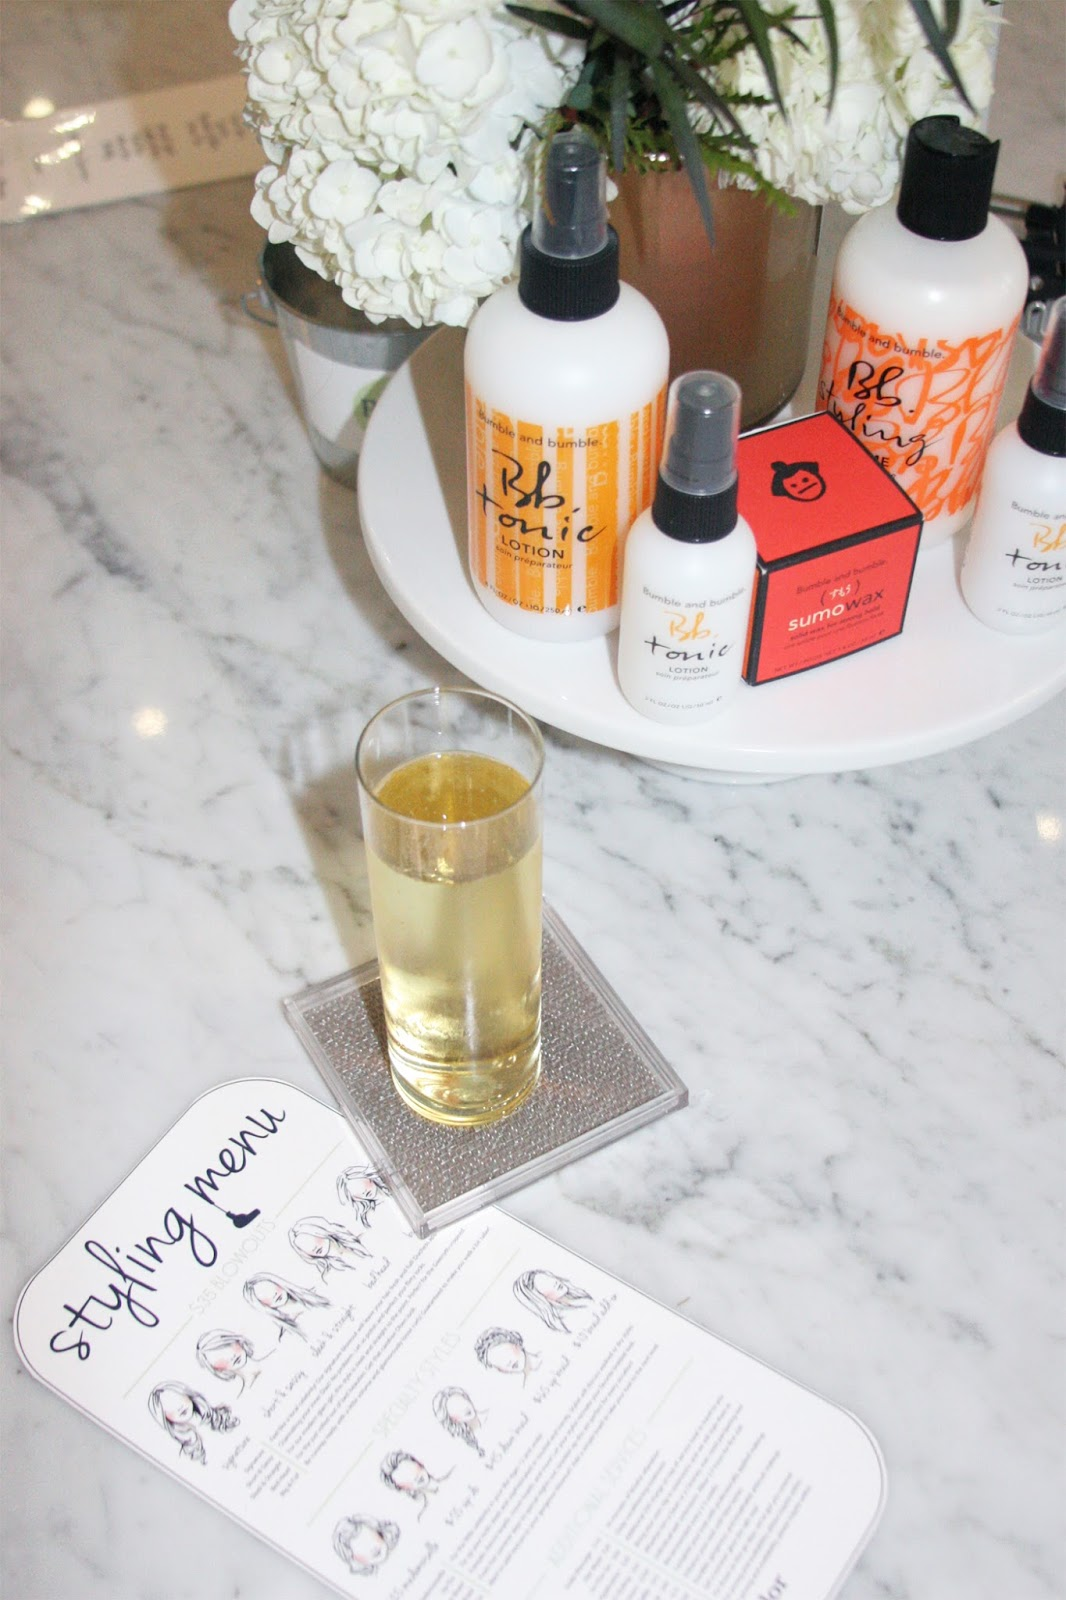 Parlor-blow-dry-bar-style-menu-and-champagne